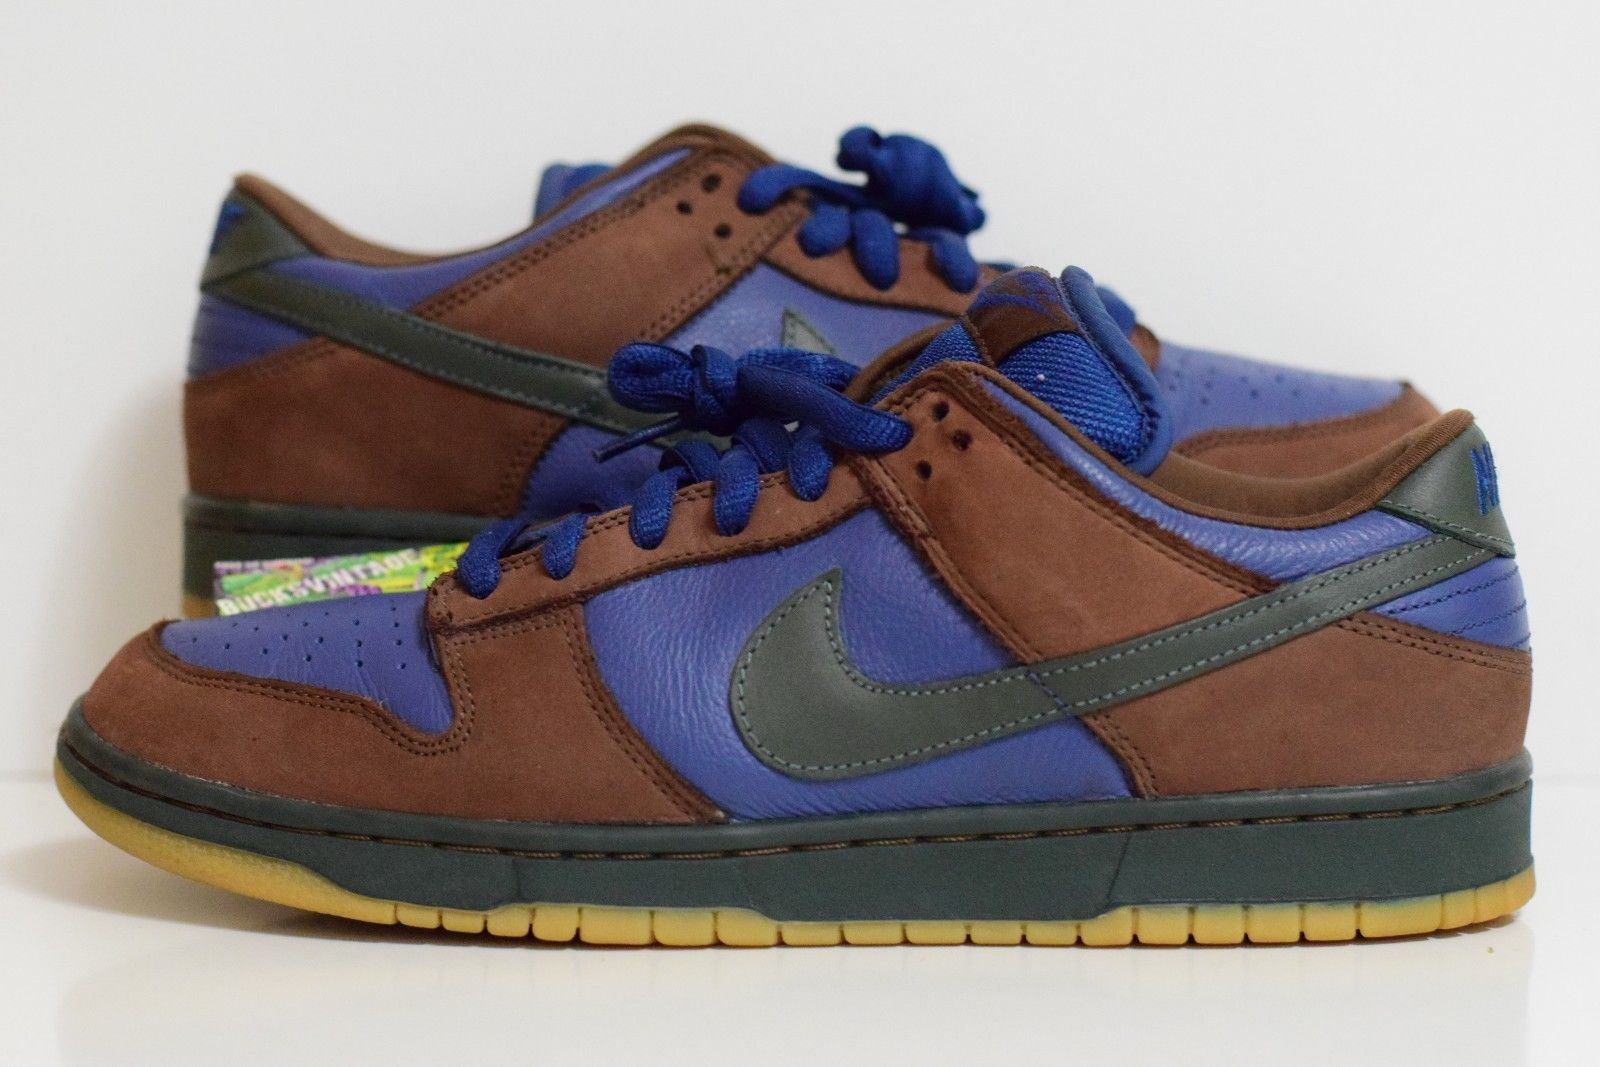 brand new 077d7 74e11 Size 10.5   2003 Nike Dunk SB Low Pro SB BARF Navy Outdoor Green